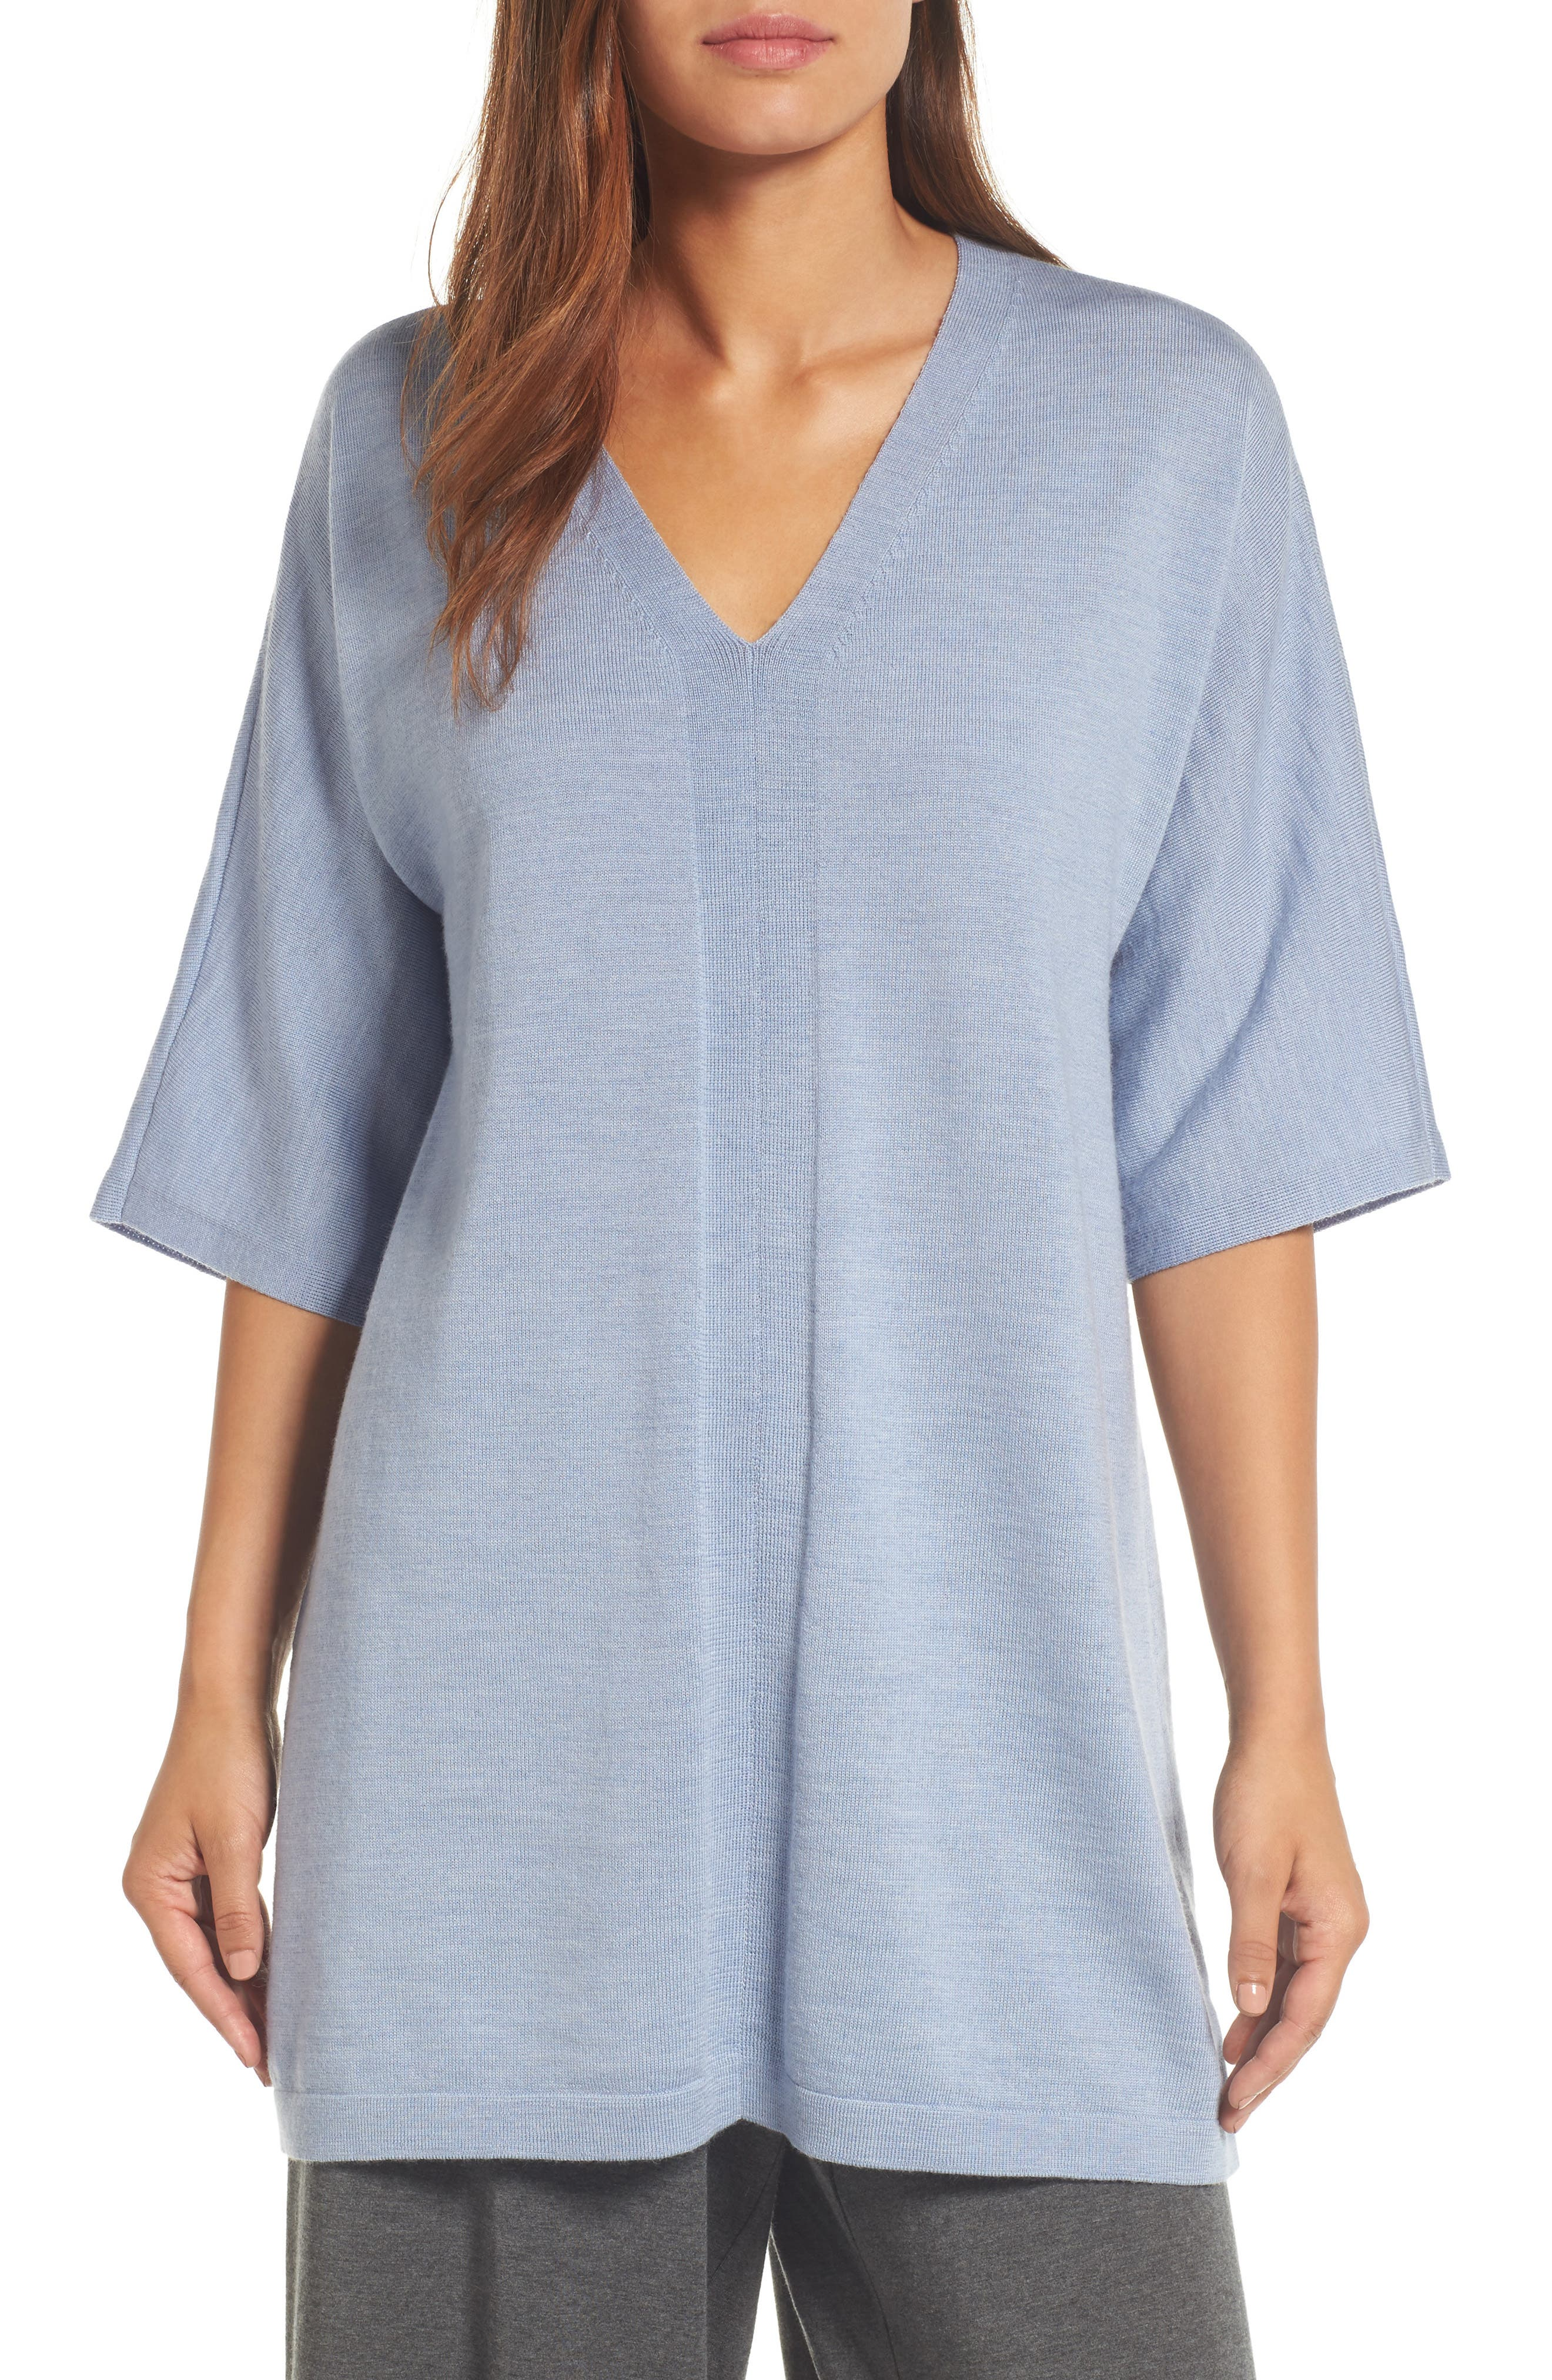 Alternate Image 1 Selected - Eileen Fisher Merino Wool Tunic Sweater